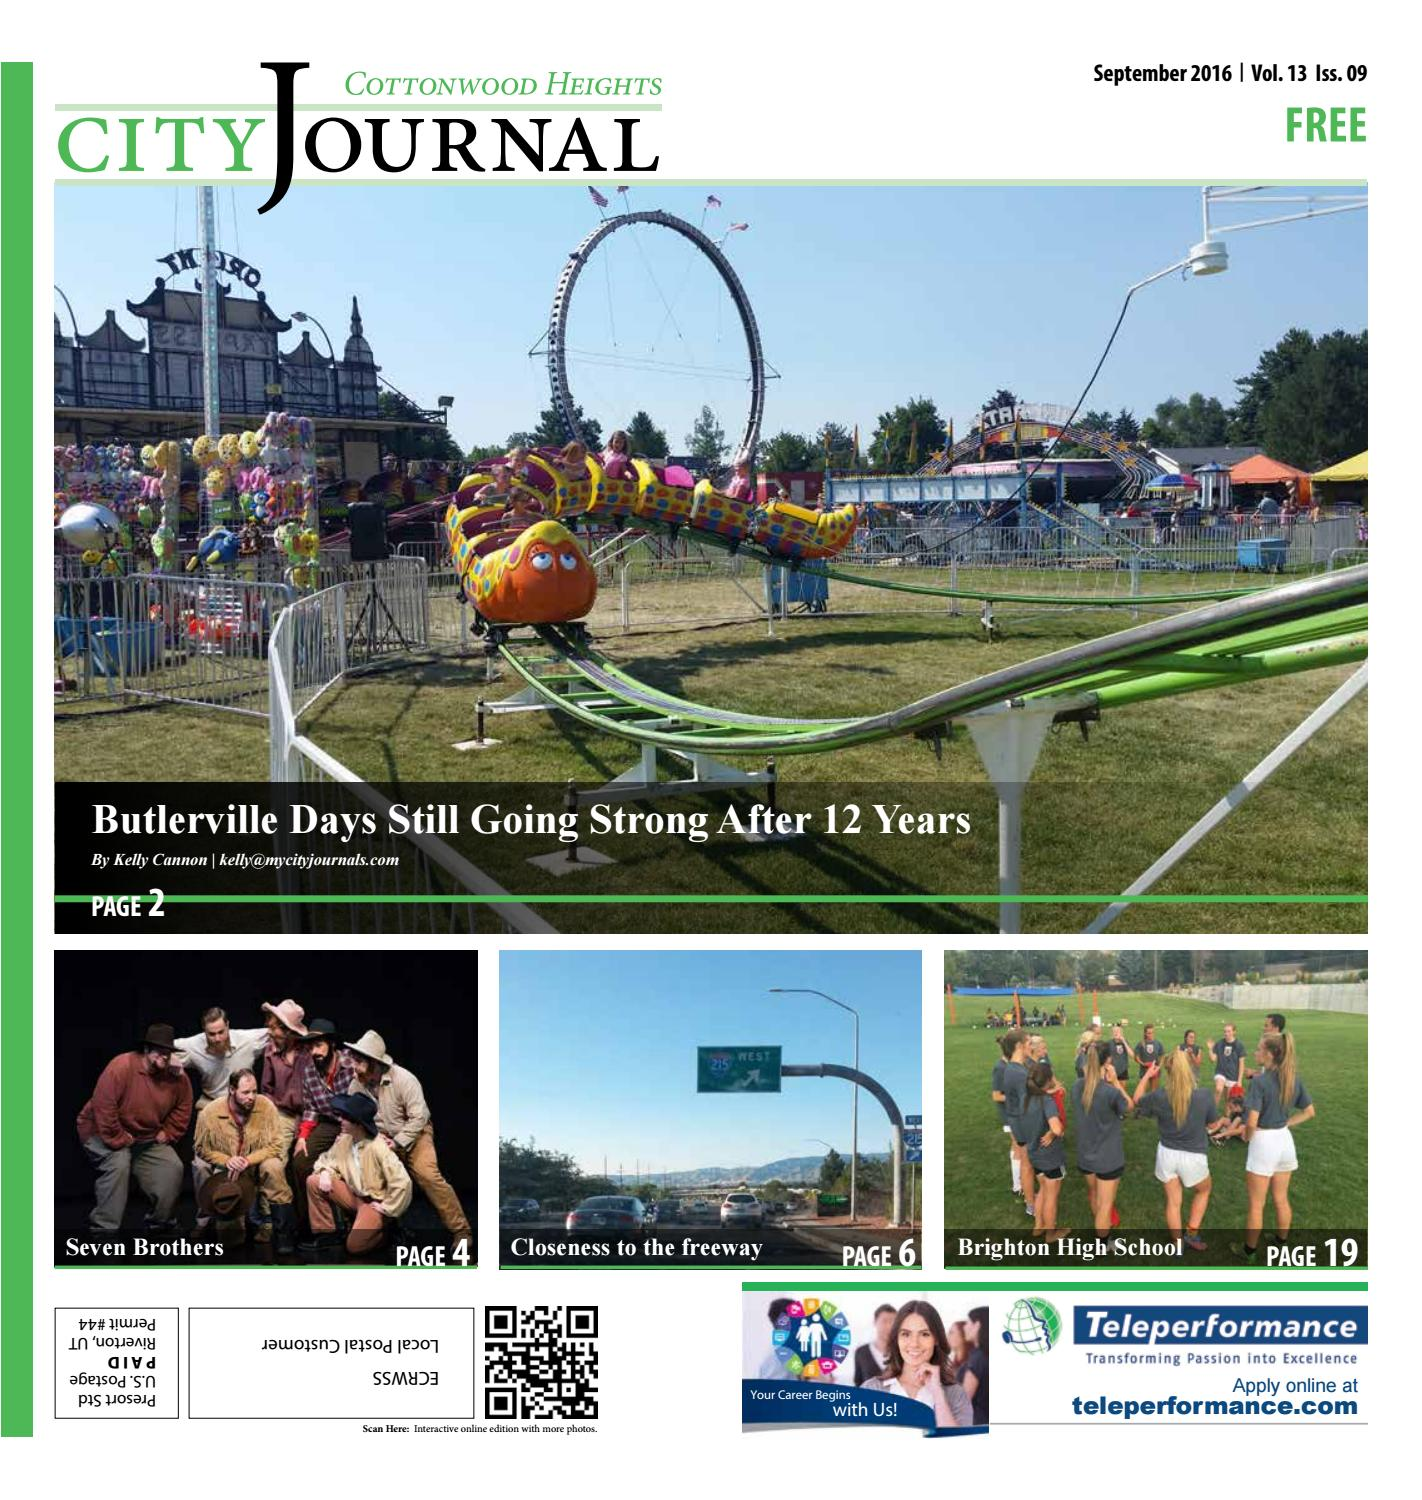 Midvale Heights Bison Celebrate >> Cottonwood Heights September 2016 By The City Journals Issuu